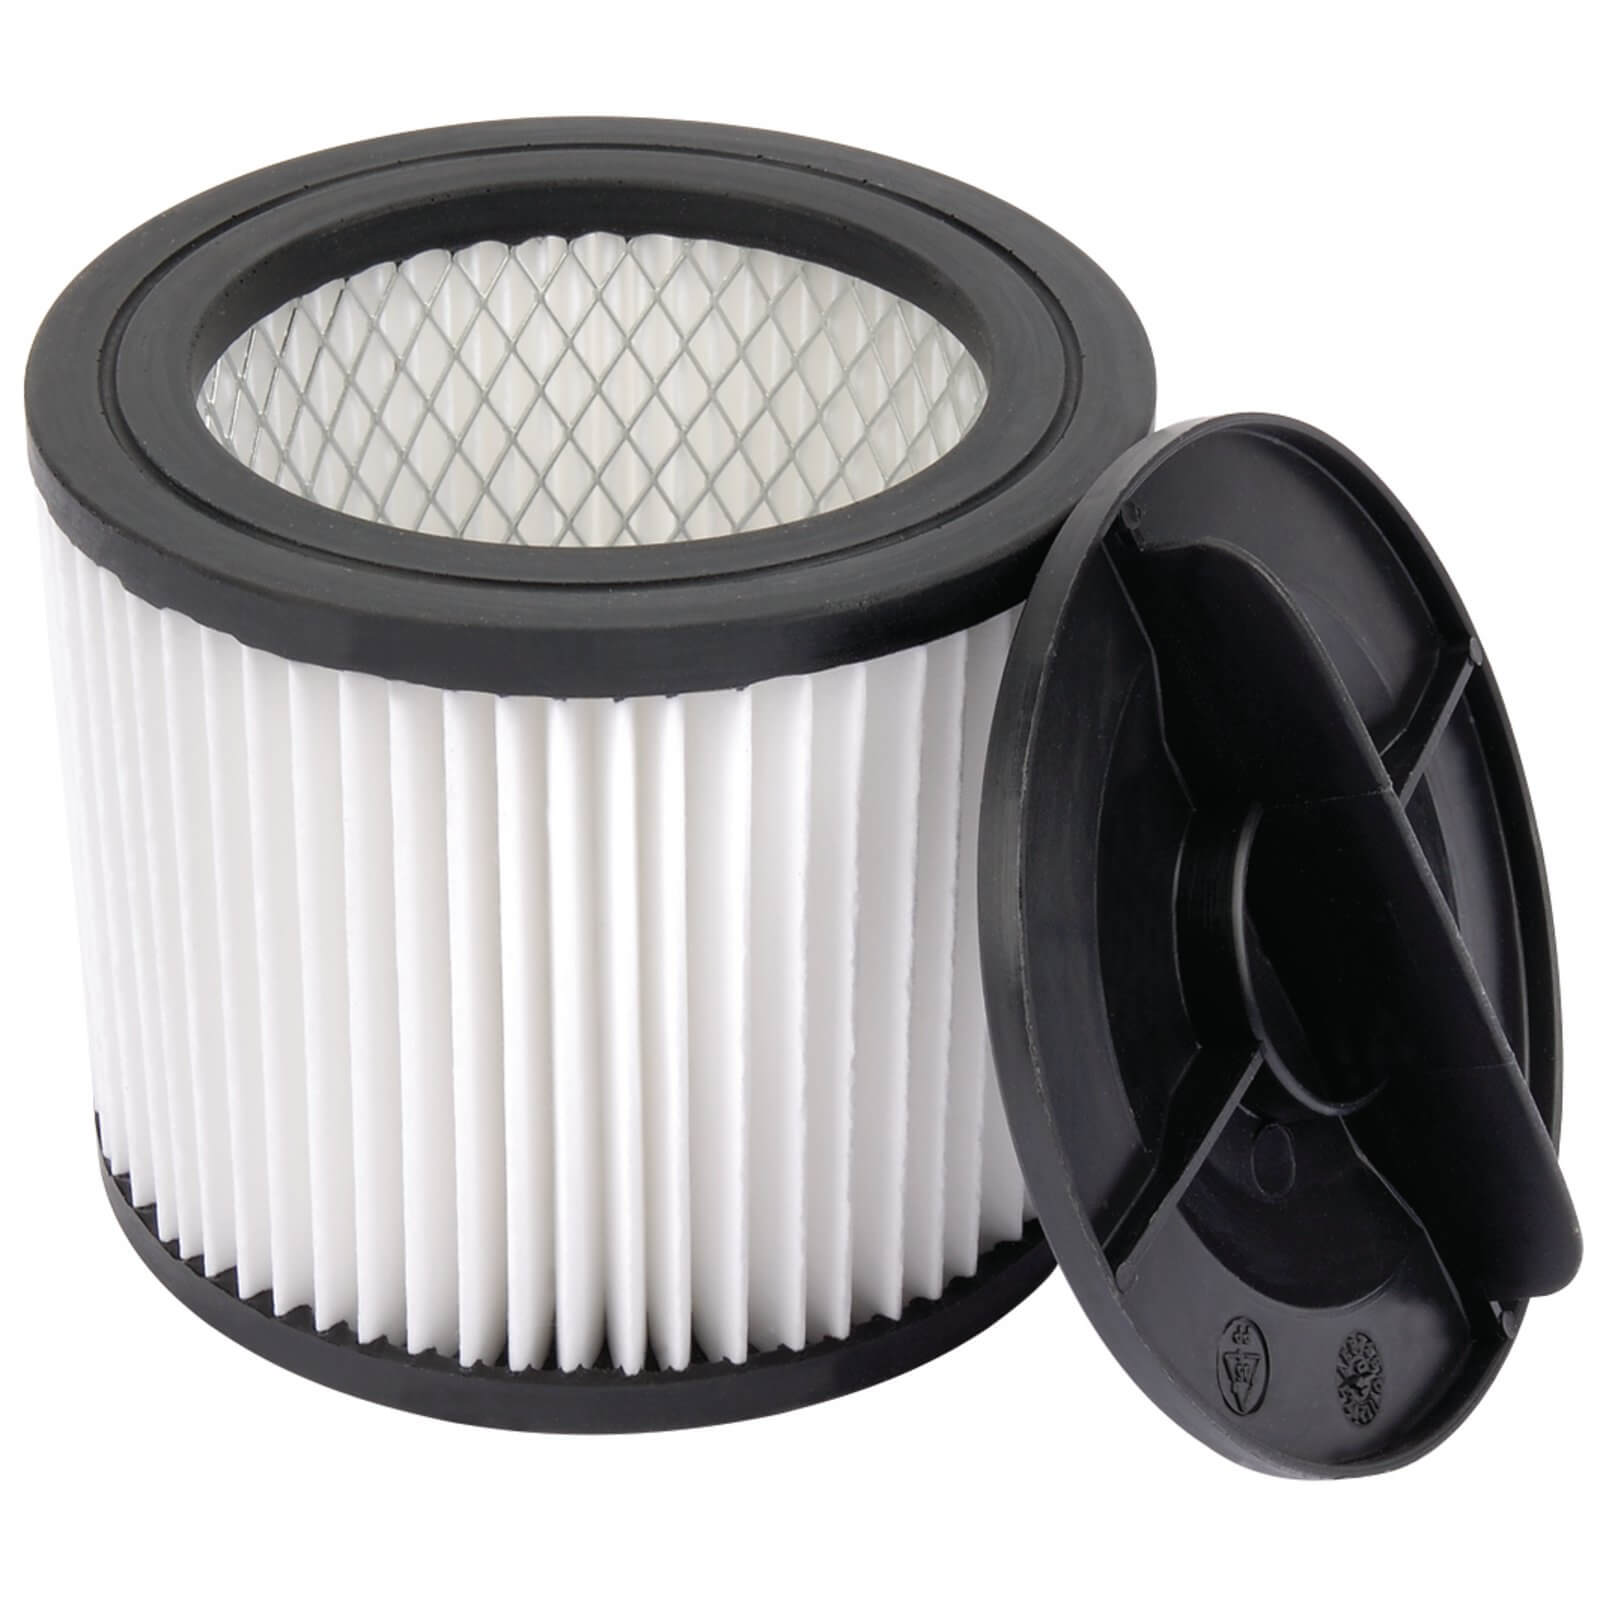 Image of Draper Hepa Filter for WDV21 and WDV30SS Vacuum Cleaners